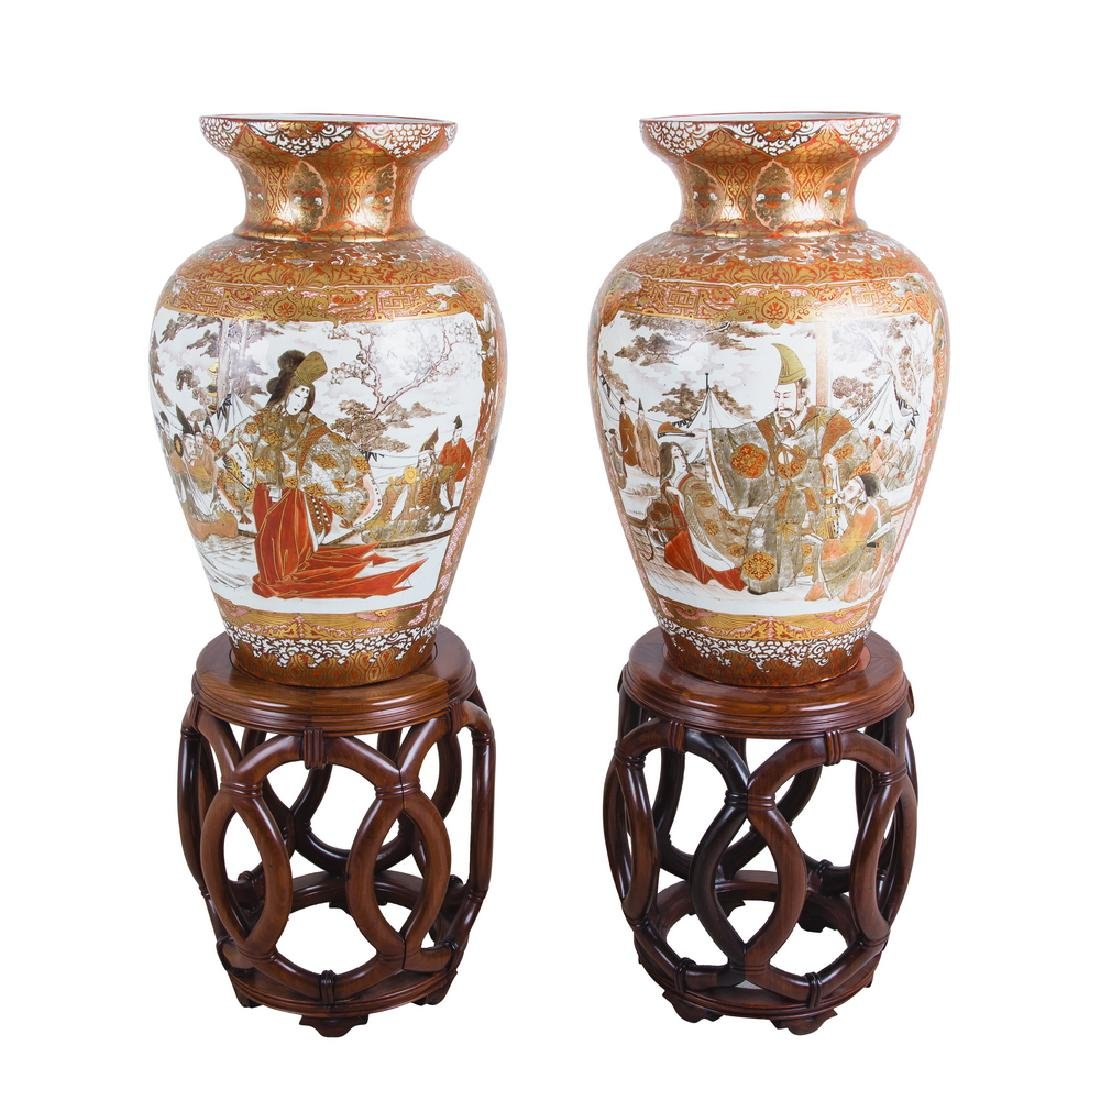 PAIR OF JAPANESE IMARI PORCELAIN URNS